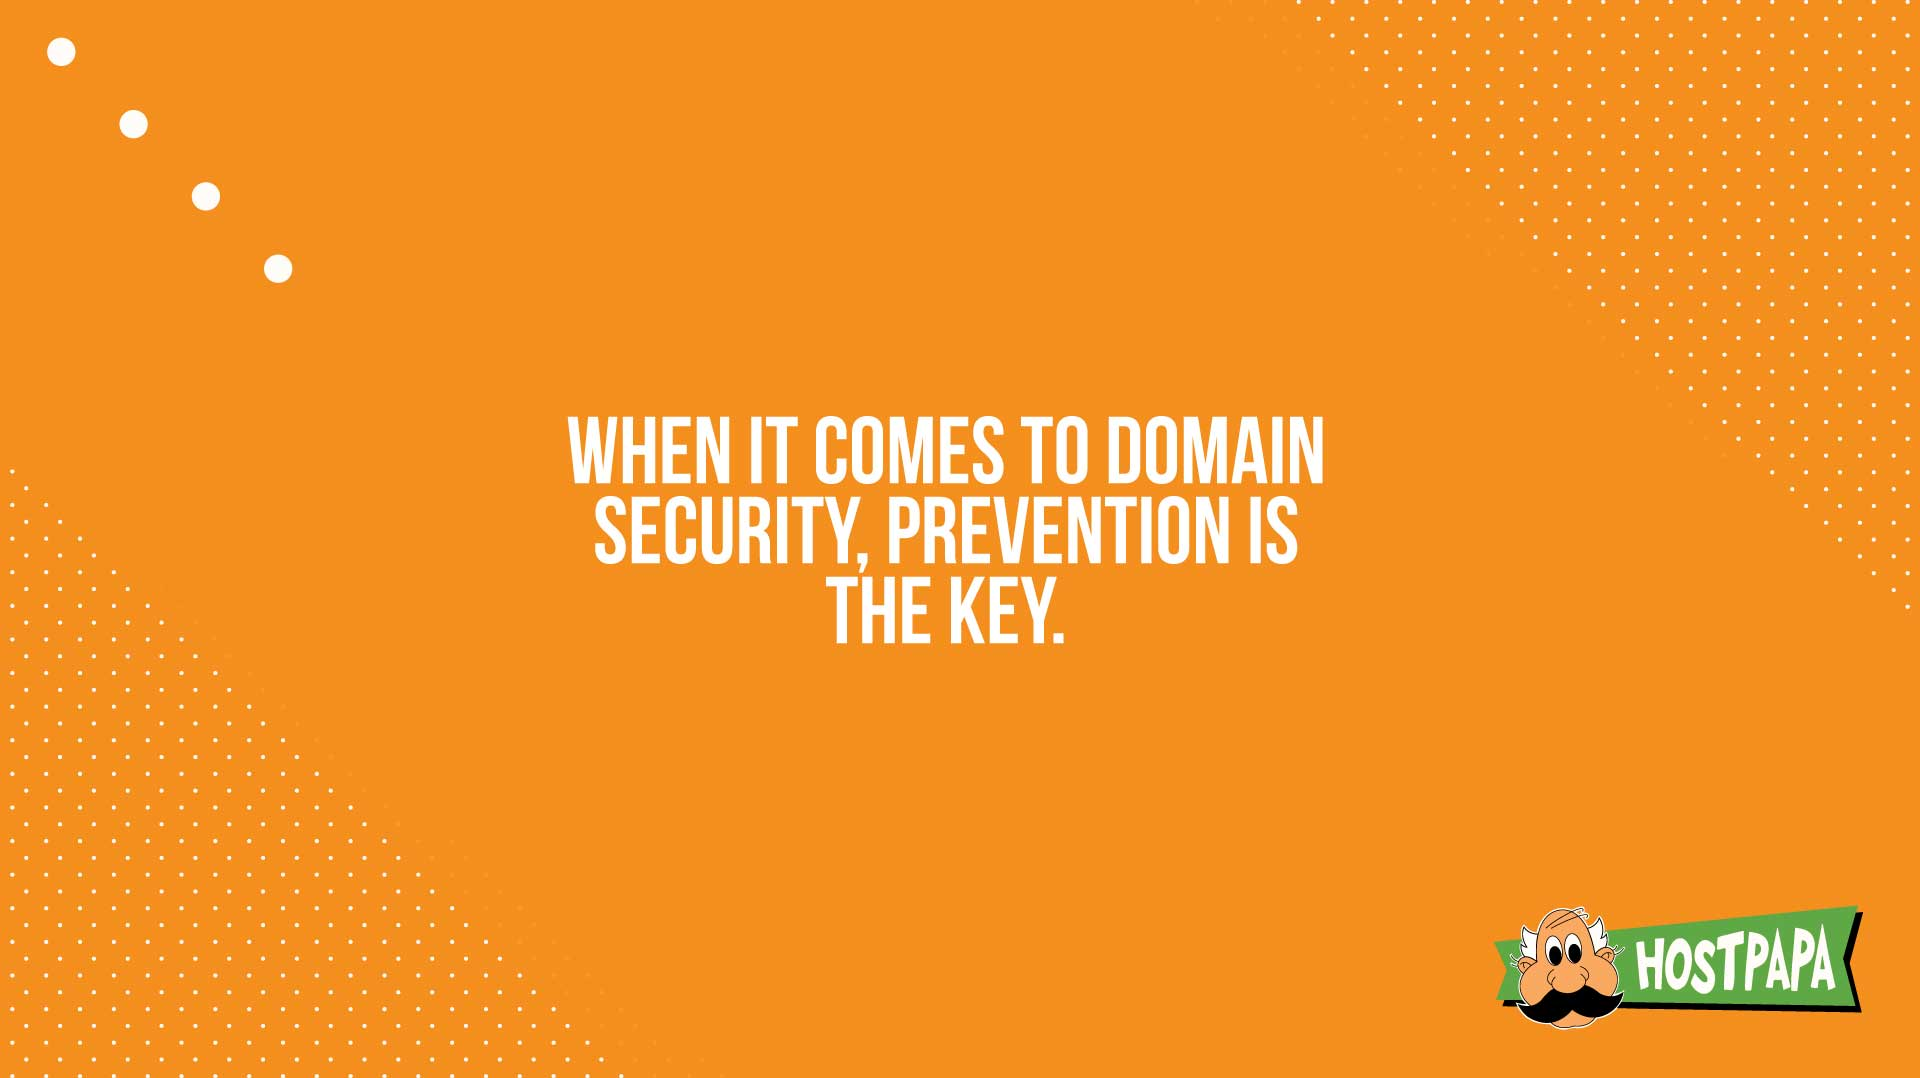 When it comes to domain security, prevention is the key